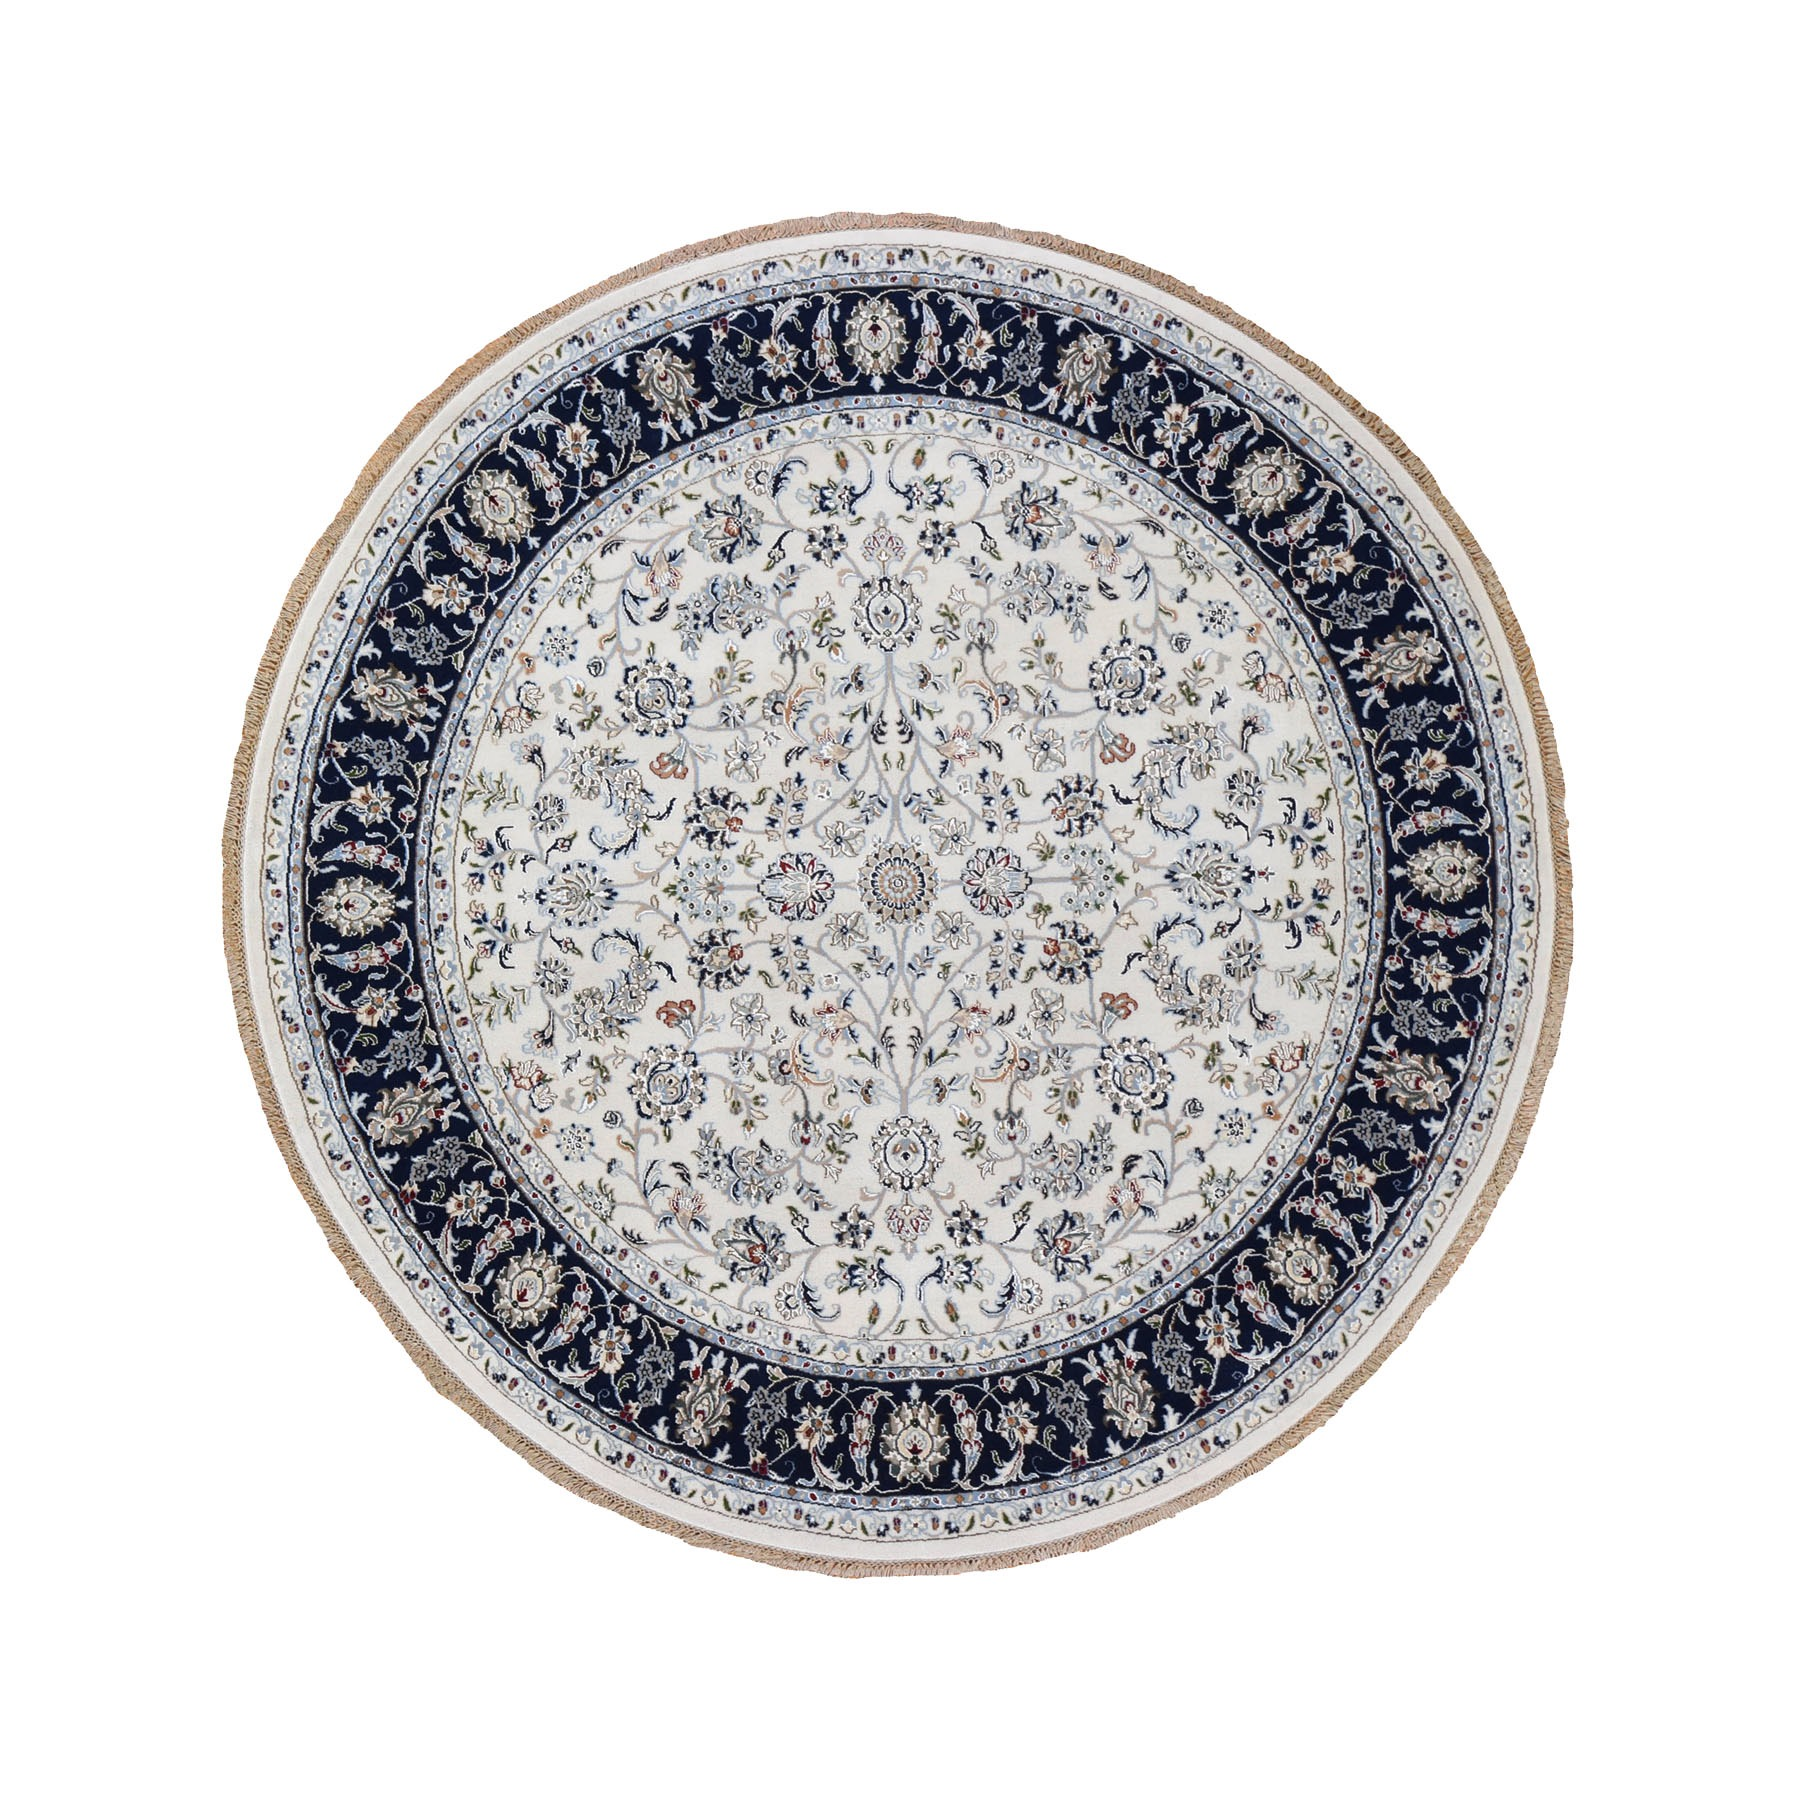 "7'1""x7'1"" Ivory Nain Wool And Silk 250 KPSI All Over Design Hand Woven Round Oriental Rug"